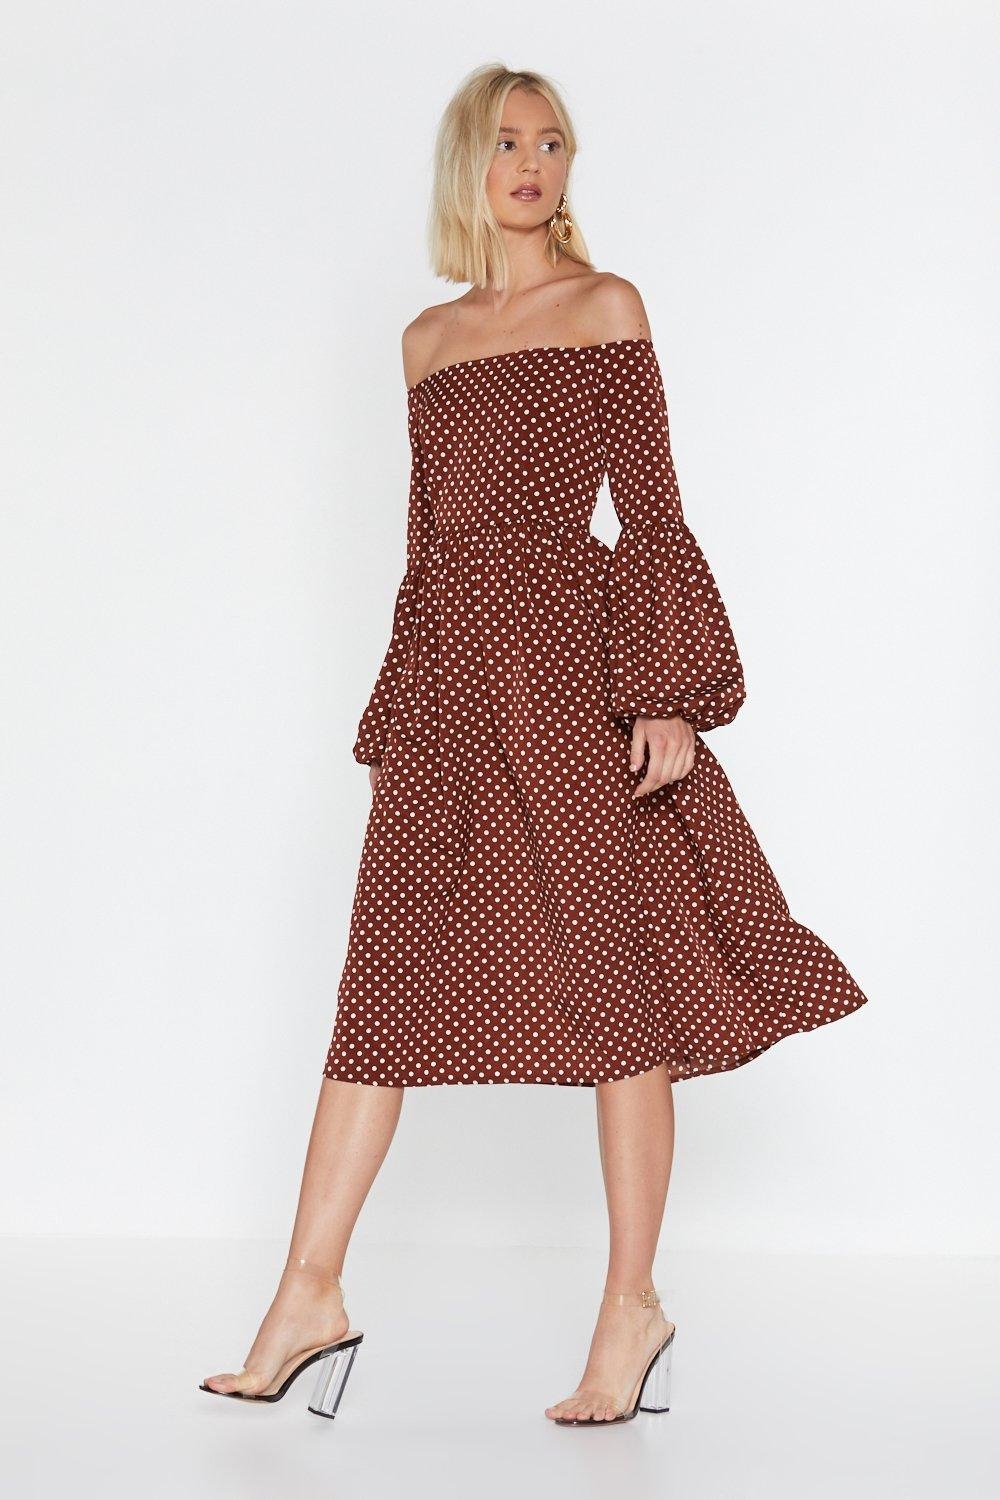 20e21a13ef822 Swing In Our Direction Polka Dot Dress